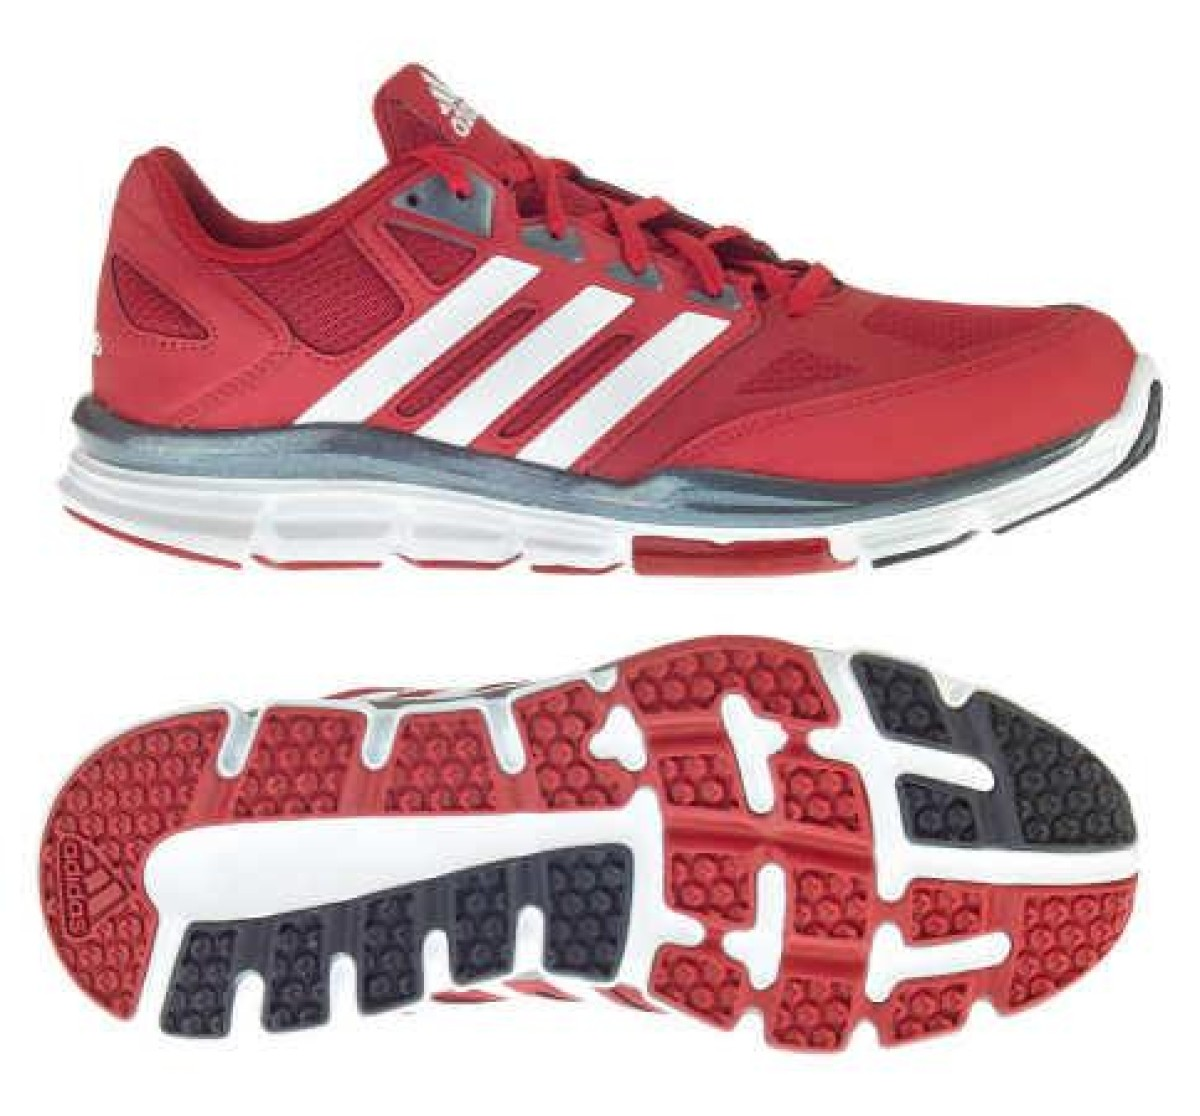 low priced 698fb 31d9c adidas Schuhe Speed Trainer rot/weiss